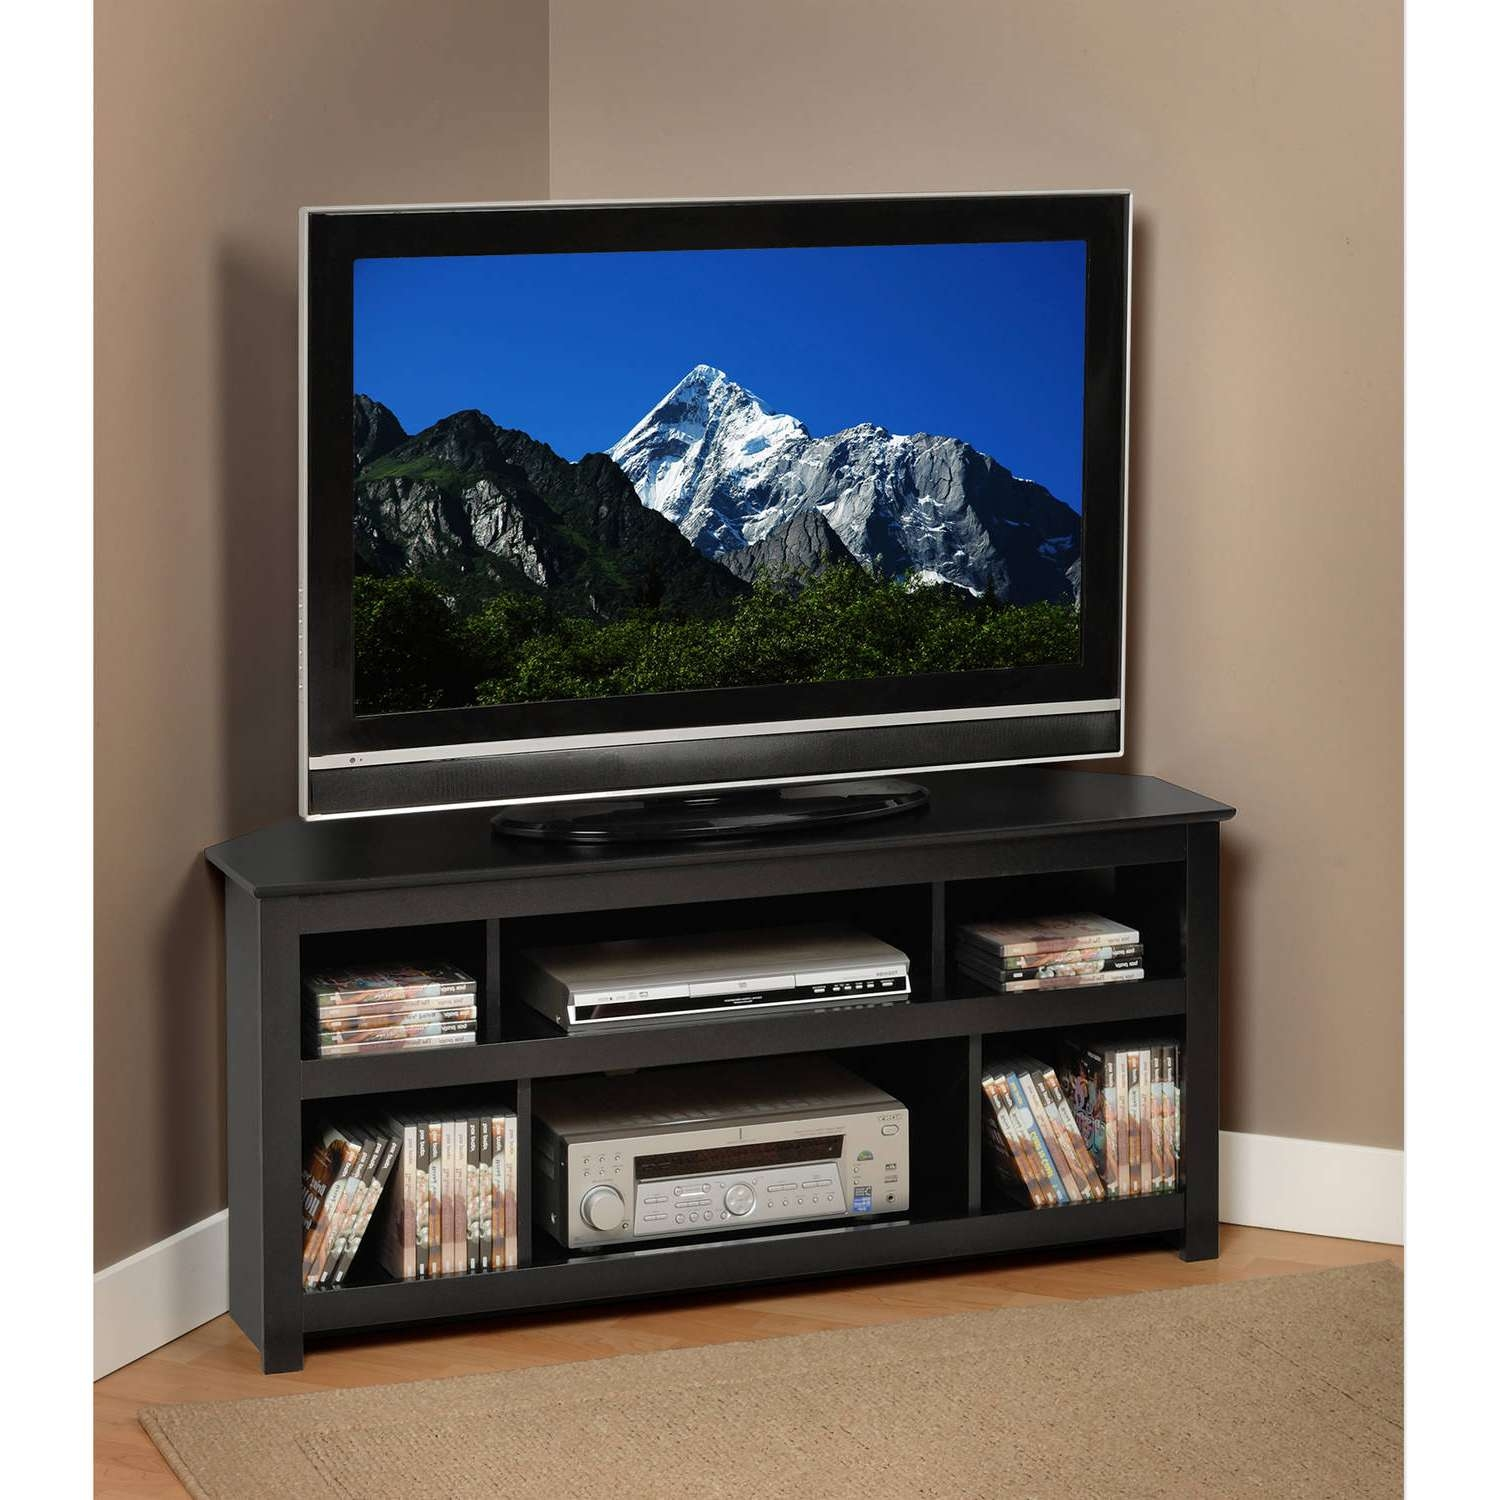 Tv : Amazing Low Corner Tv Stands Leick Home Westwood 46 Corner Tv Regarding Corner Tv Stands For 46 Inch Flat Screen (View 7 of 15)